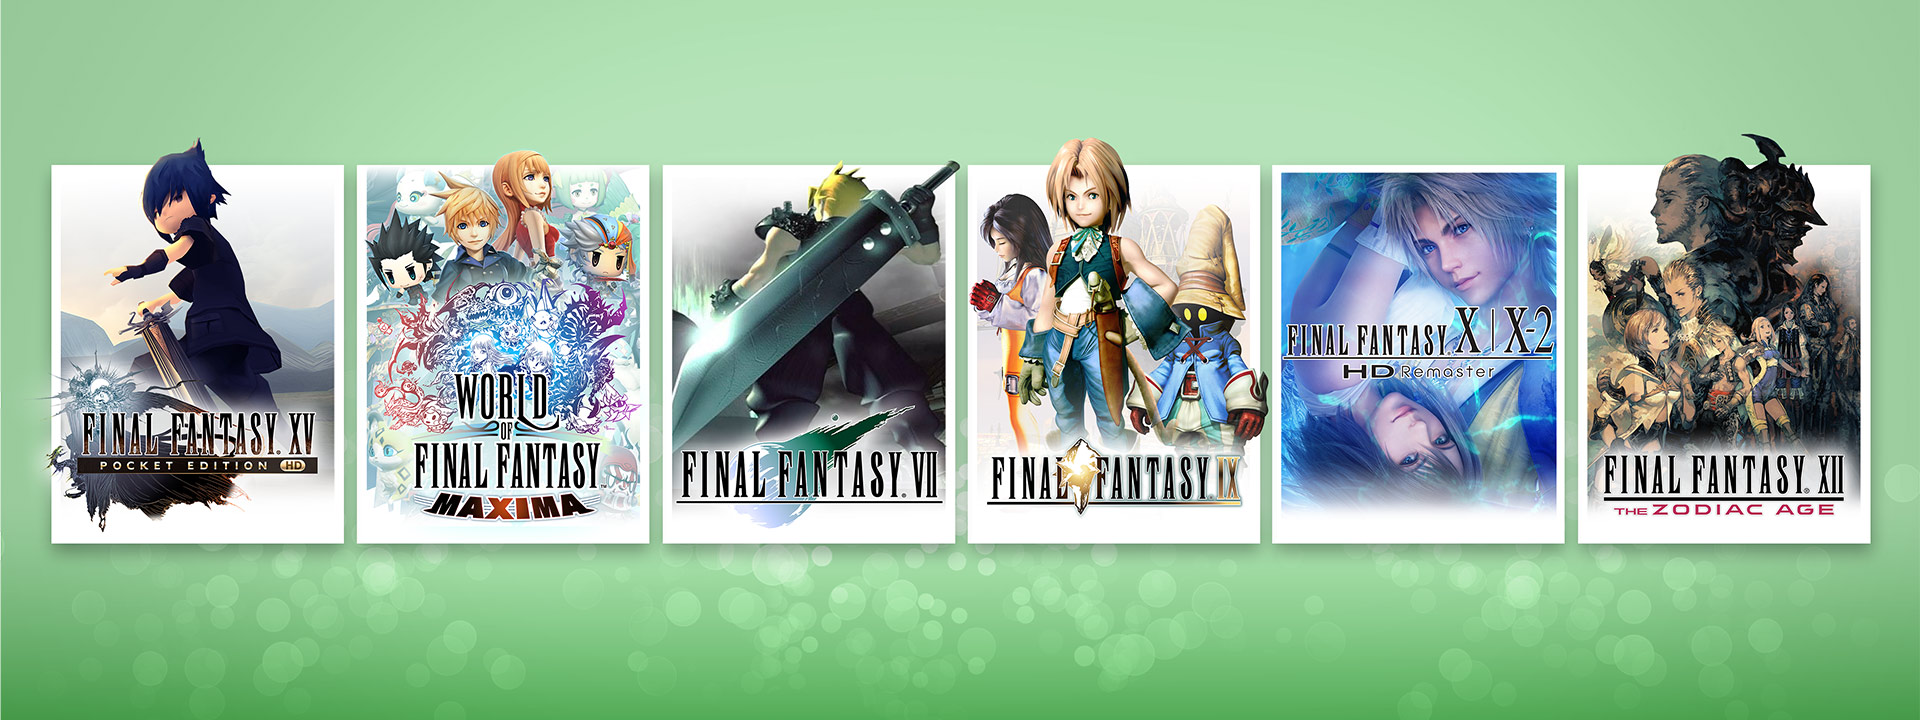 FINAL FANTASY XV POCKET EDITION HD, WORLD OF FINAL FANTASY MAXIMA, FINAL FANTASY VII, FINAL FANTASY IX, FINAL FANTASY X | X-2 HD Remaster ve FINAL FANTASY XII THE ZODIAC AGE için kutu tasarımı görselleri